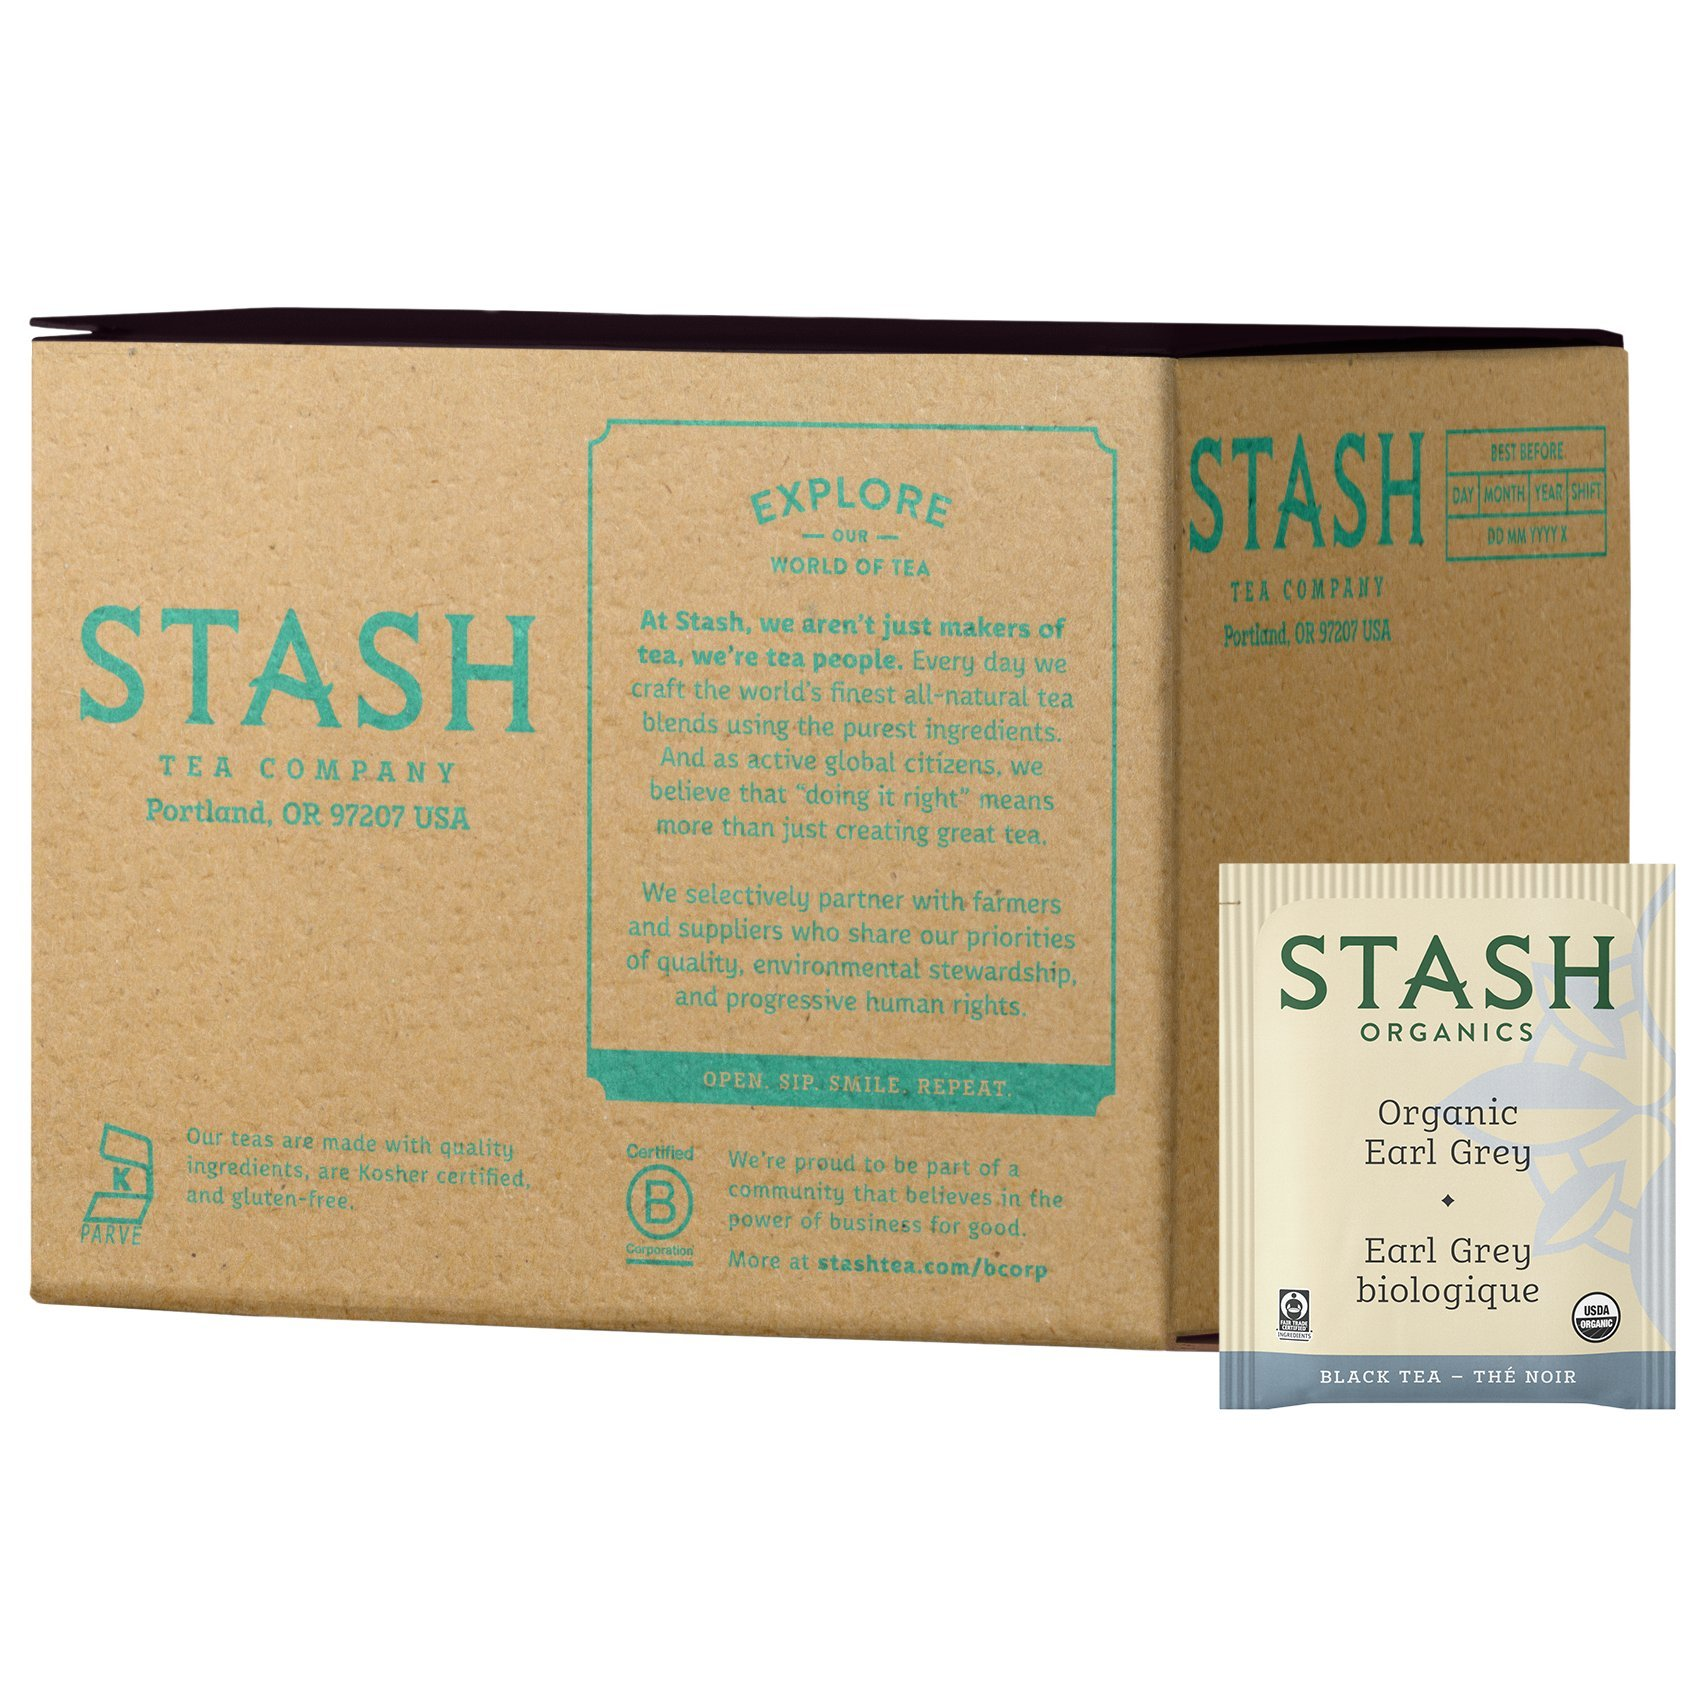 Stash Tea Organic Earl Grey Green and Black Tea 100 Count Tea Bags in Foil (Packaging May Vary) Individual Tea Bags for Use in Teapots Mugs or Cups, Black Tea and Green Tea, Brew Hot or Iced